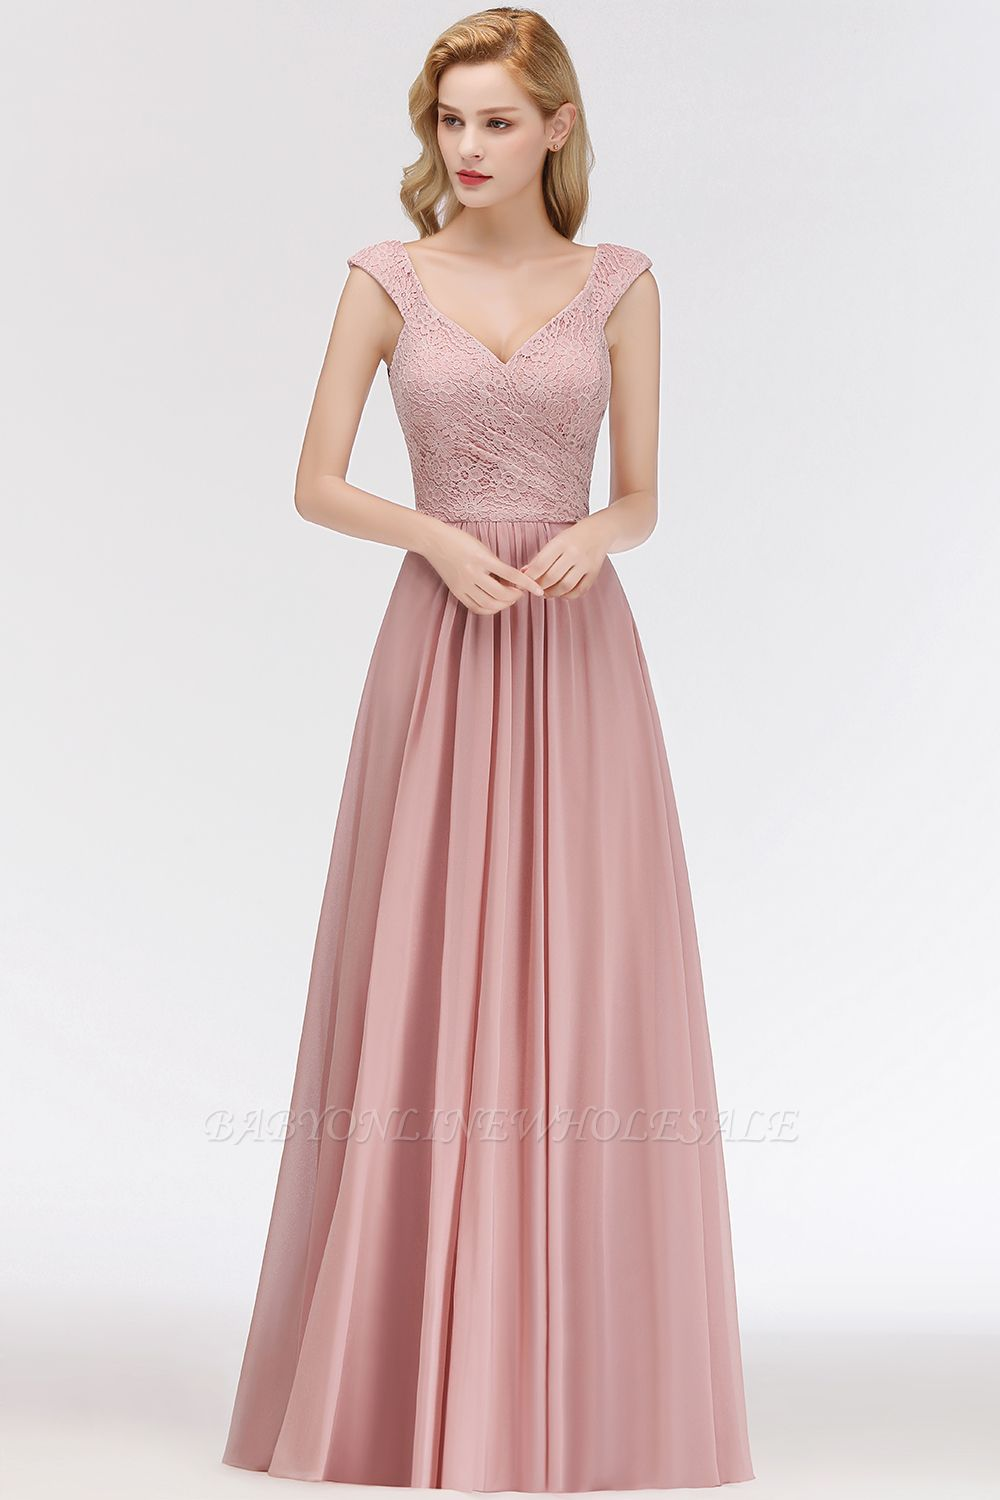 MARIA | A-line Long V-neck Sleeveless Lace Top Chiffon Bridesmaid Dresses